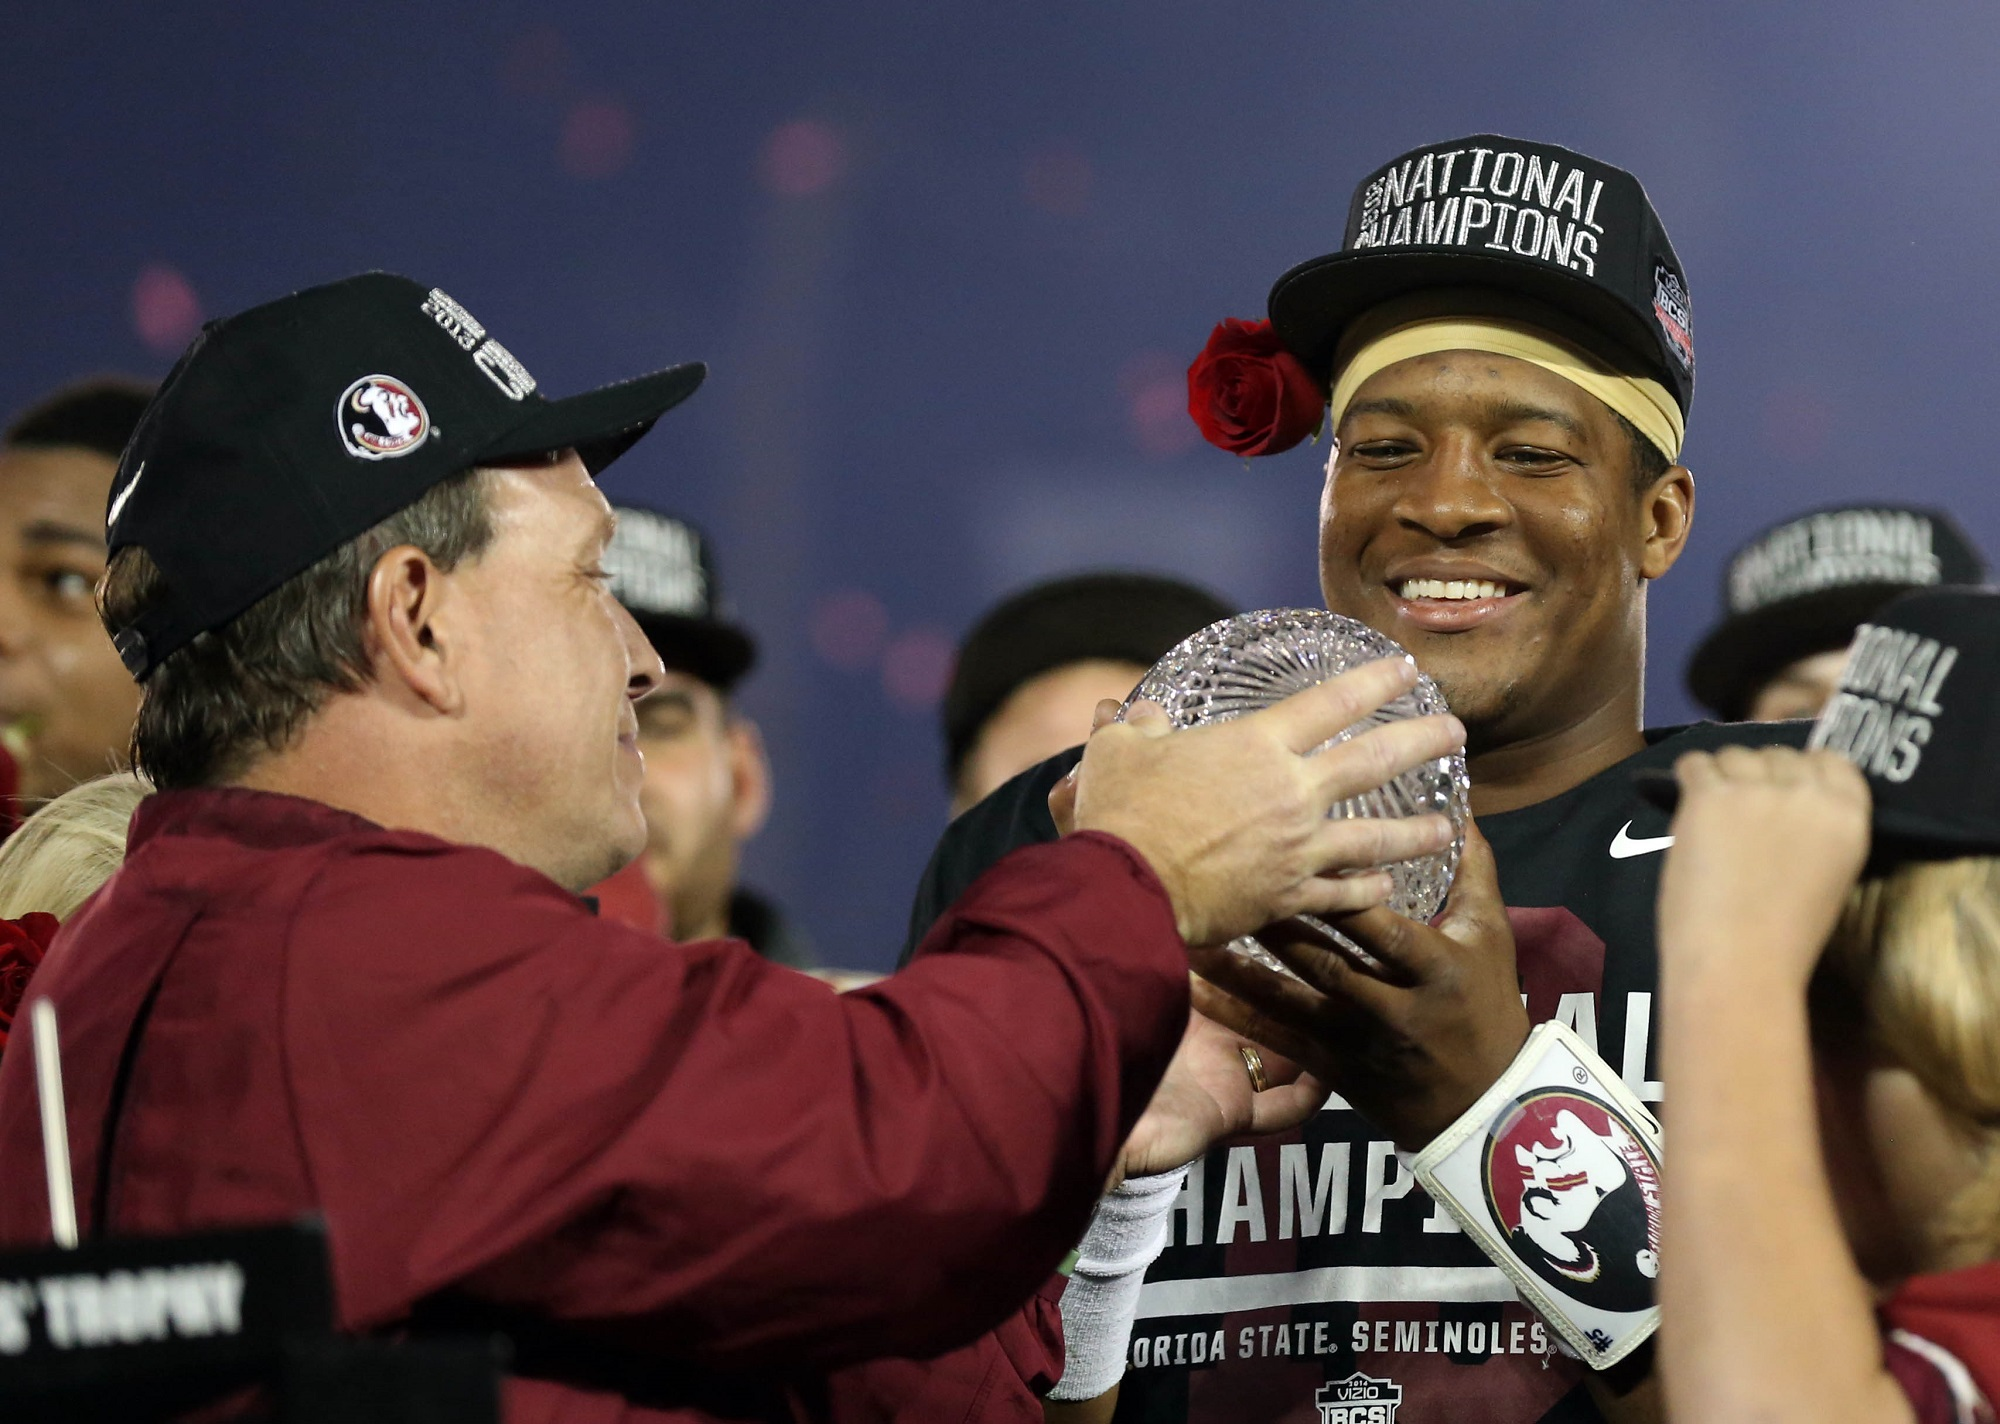 Florida State star quarterback Jameis Winston's career highlights